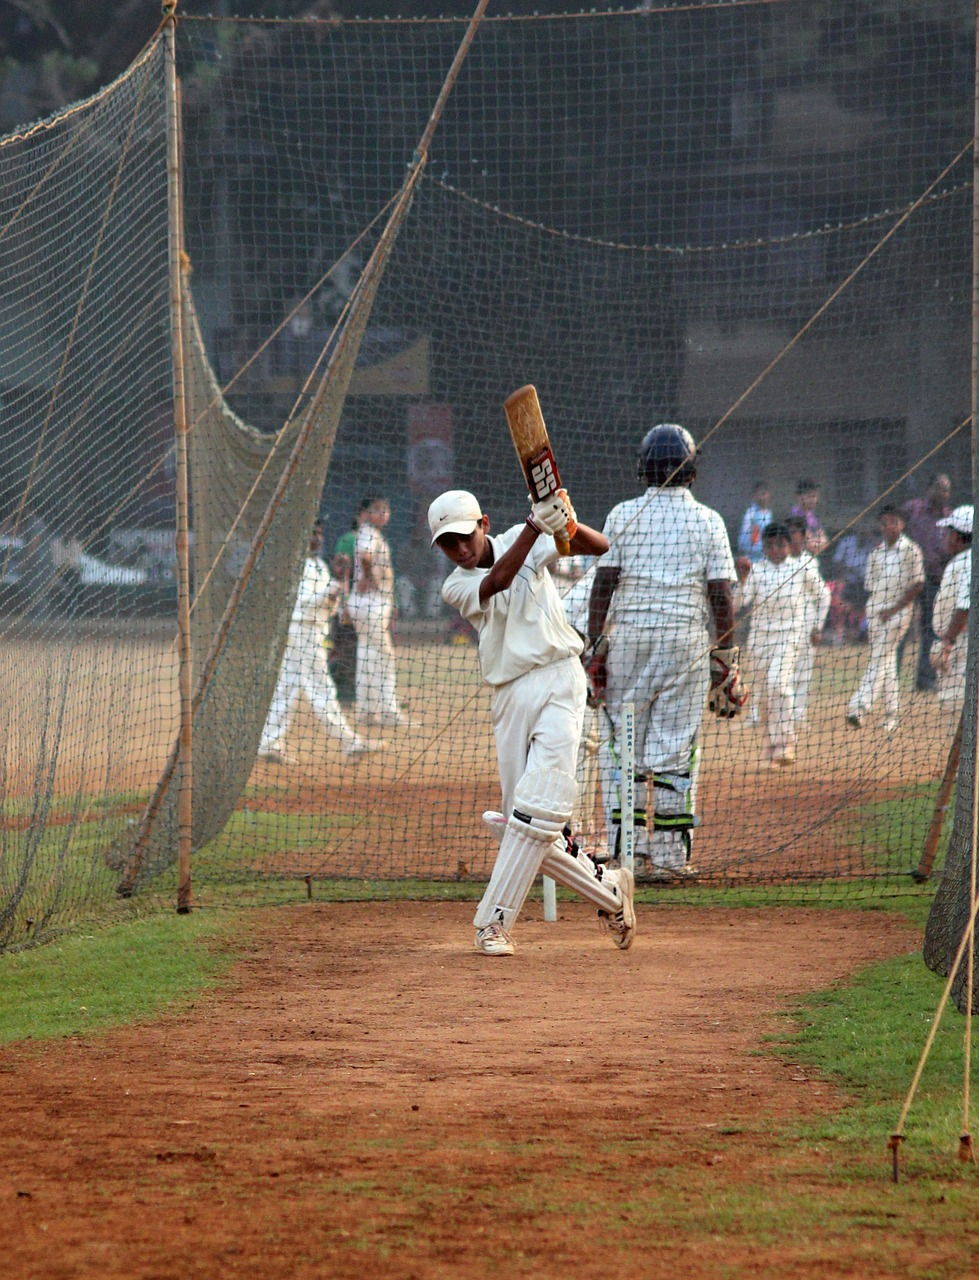 cricket batsman ball game free picture